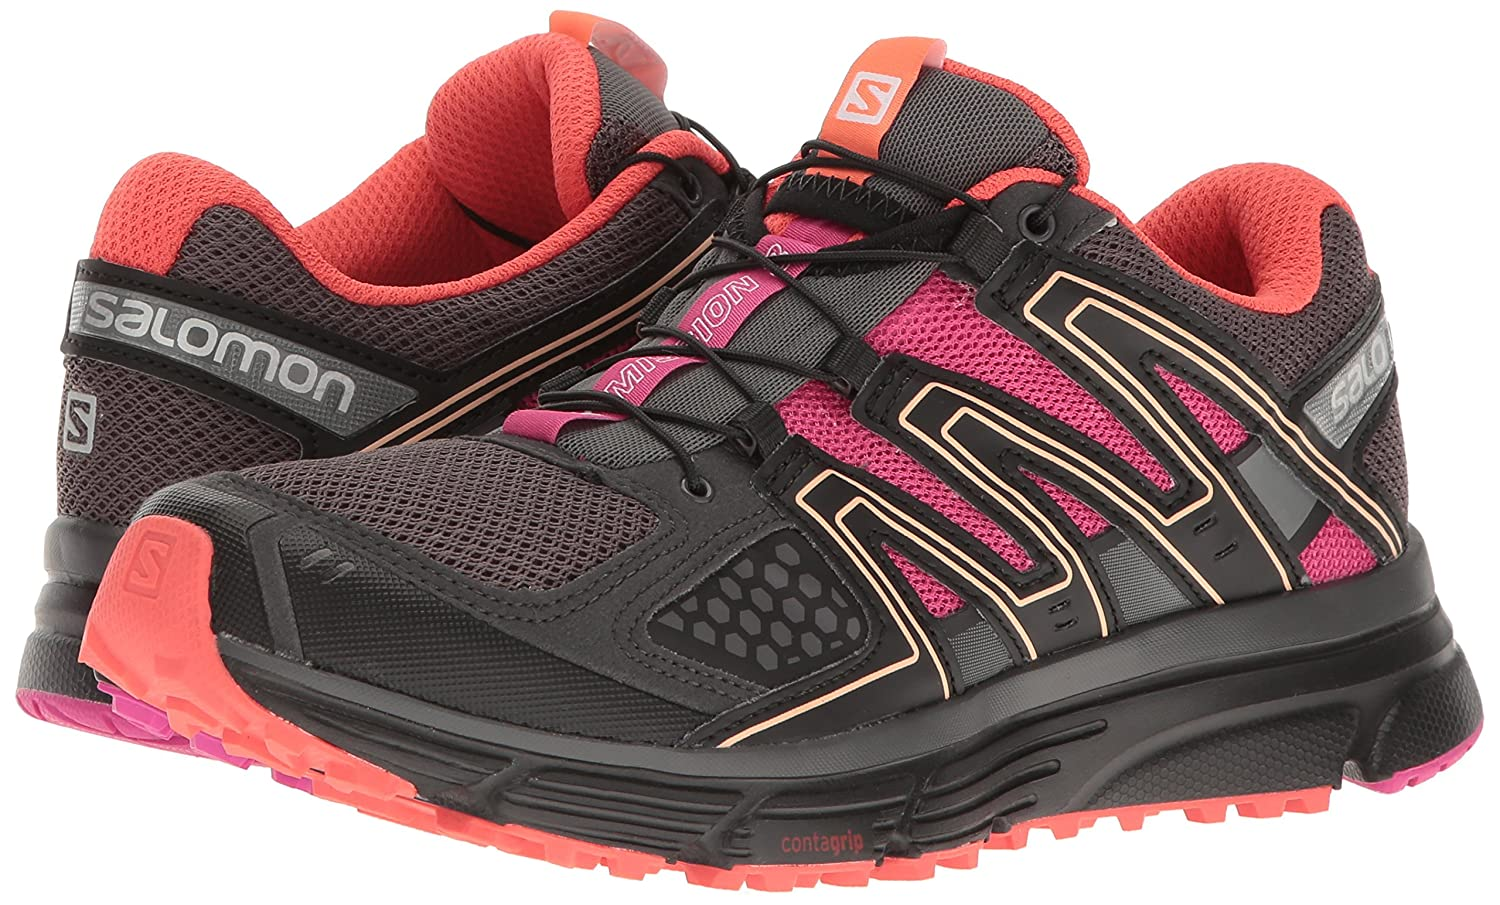 Salomon Women's X-Mission 3 US|Magnet/Black/Rose W-w B01HD21LJ6 8.5 B(M) US|Magnet/Black/Rose 3 Violet bf0504